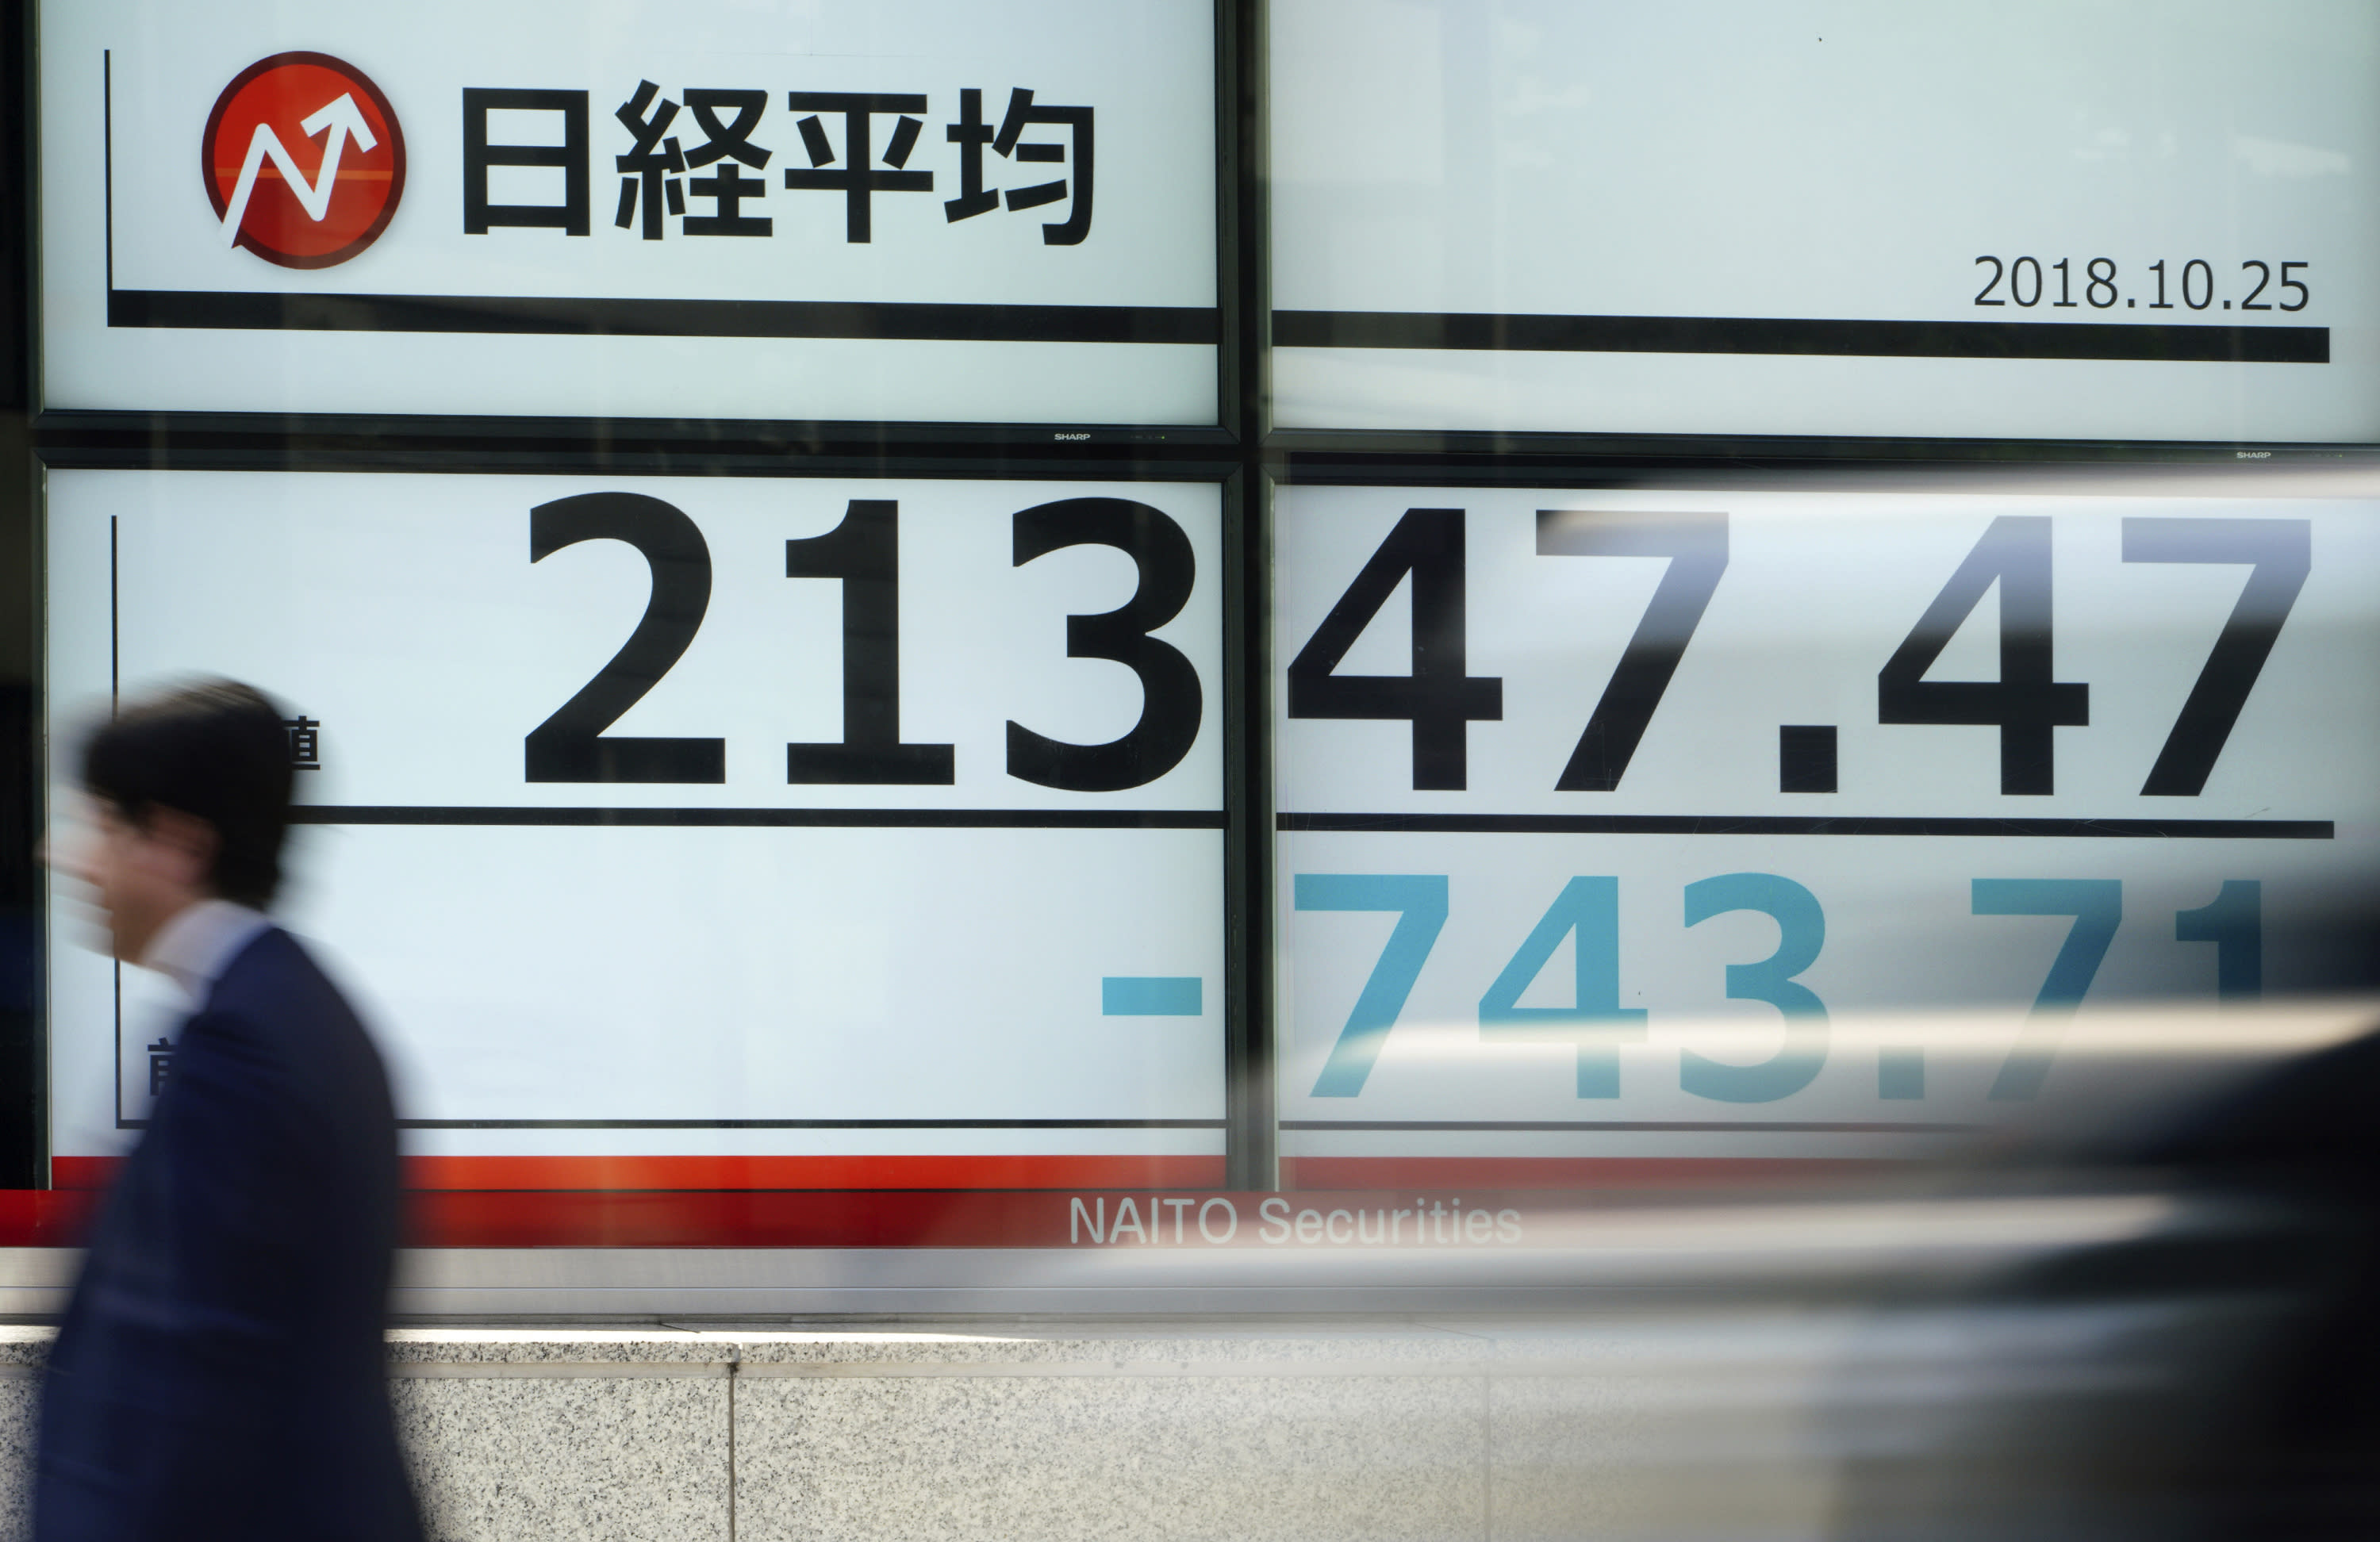 A man walks past an electronic stock board showing Japan's Nikkei 225 index at a securities firm Thursday, Oct. 25, 2018 in Tokyo. Shares fell moderately in Asia on Thursday after another torrent of selling gripped Wall Street overnight, sending the Dow Jones Industrial Average plummeting more than 600 points and erasing its gains for the year. Japan's Nikkei 225 index sank sharply on the open but leveled off, regaining some lost ground. (AP Photo/Eugene Hoshiko)